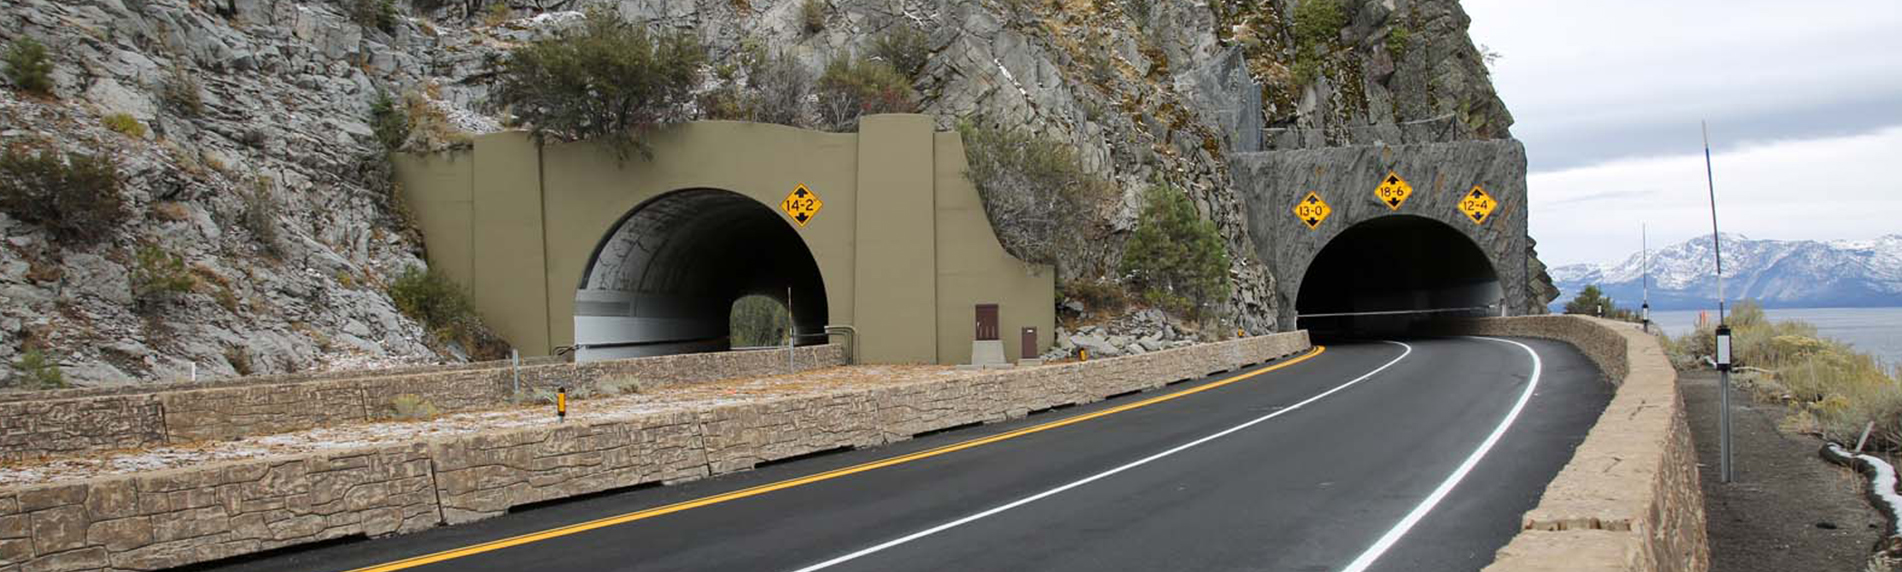 new cave rock tunnel u.s. 50 extension project